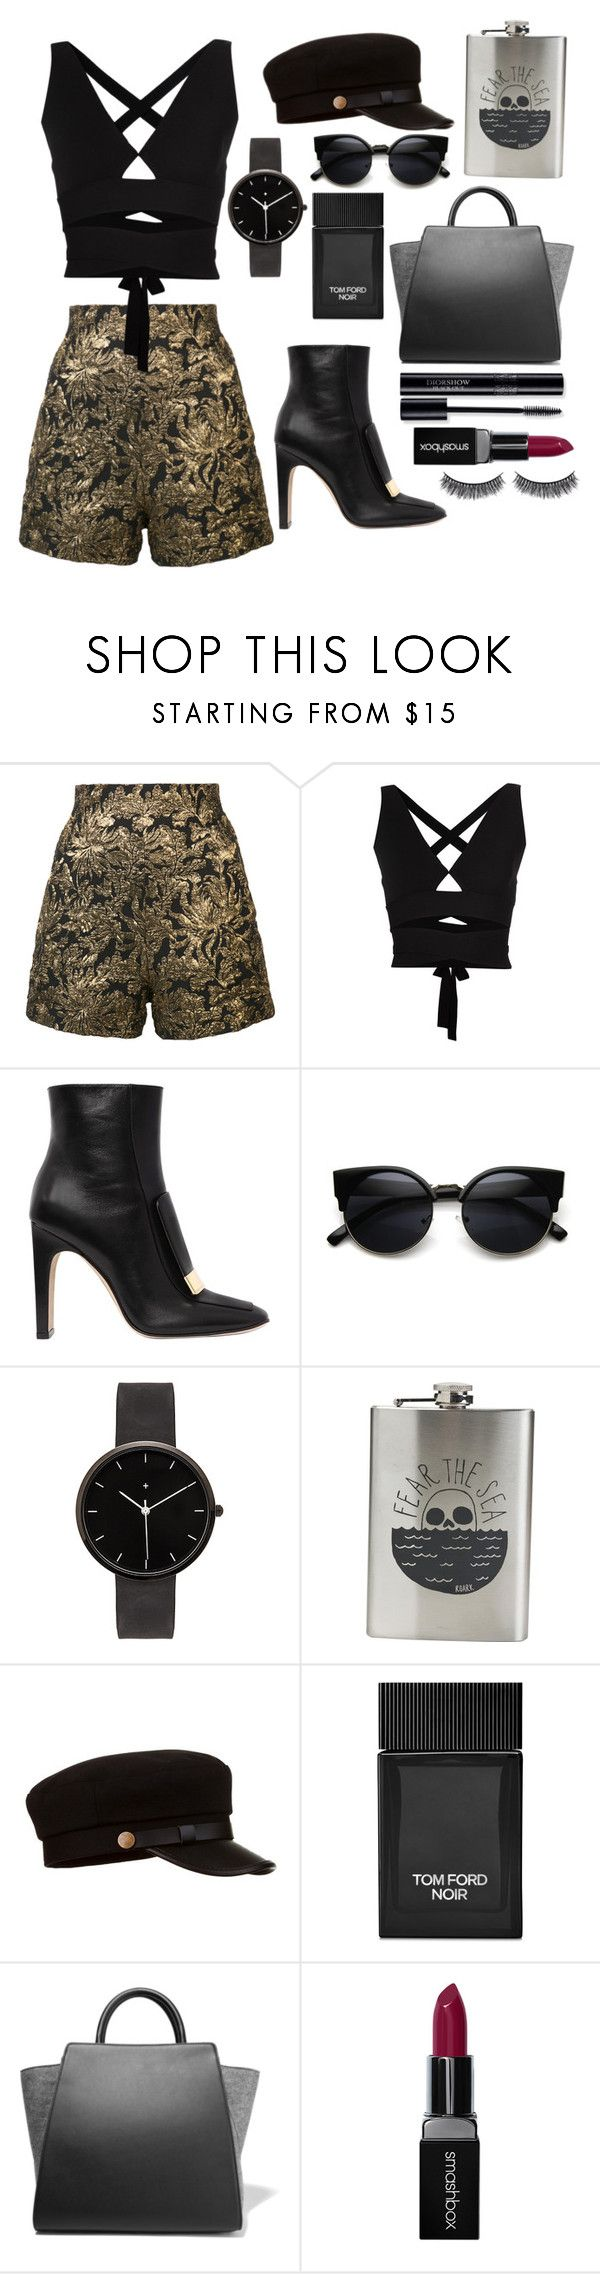 """""""#00083"""" by nglmfrryln ❤ liked on Polyvore featuring Haider Ackermann, Proenza Schouler, Sergio Rossi, I Love Ugly, Roark, Tom Ford, ZAC Zac Posen, Smashbox and Battington"""